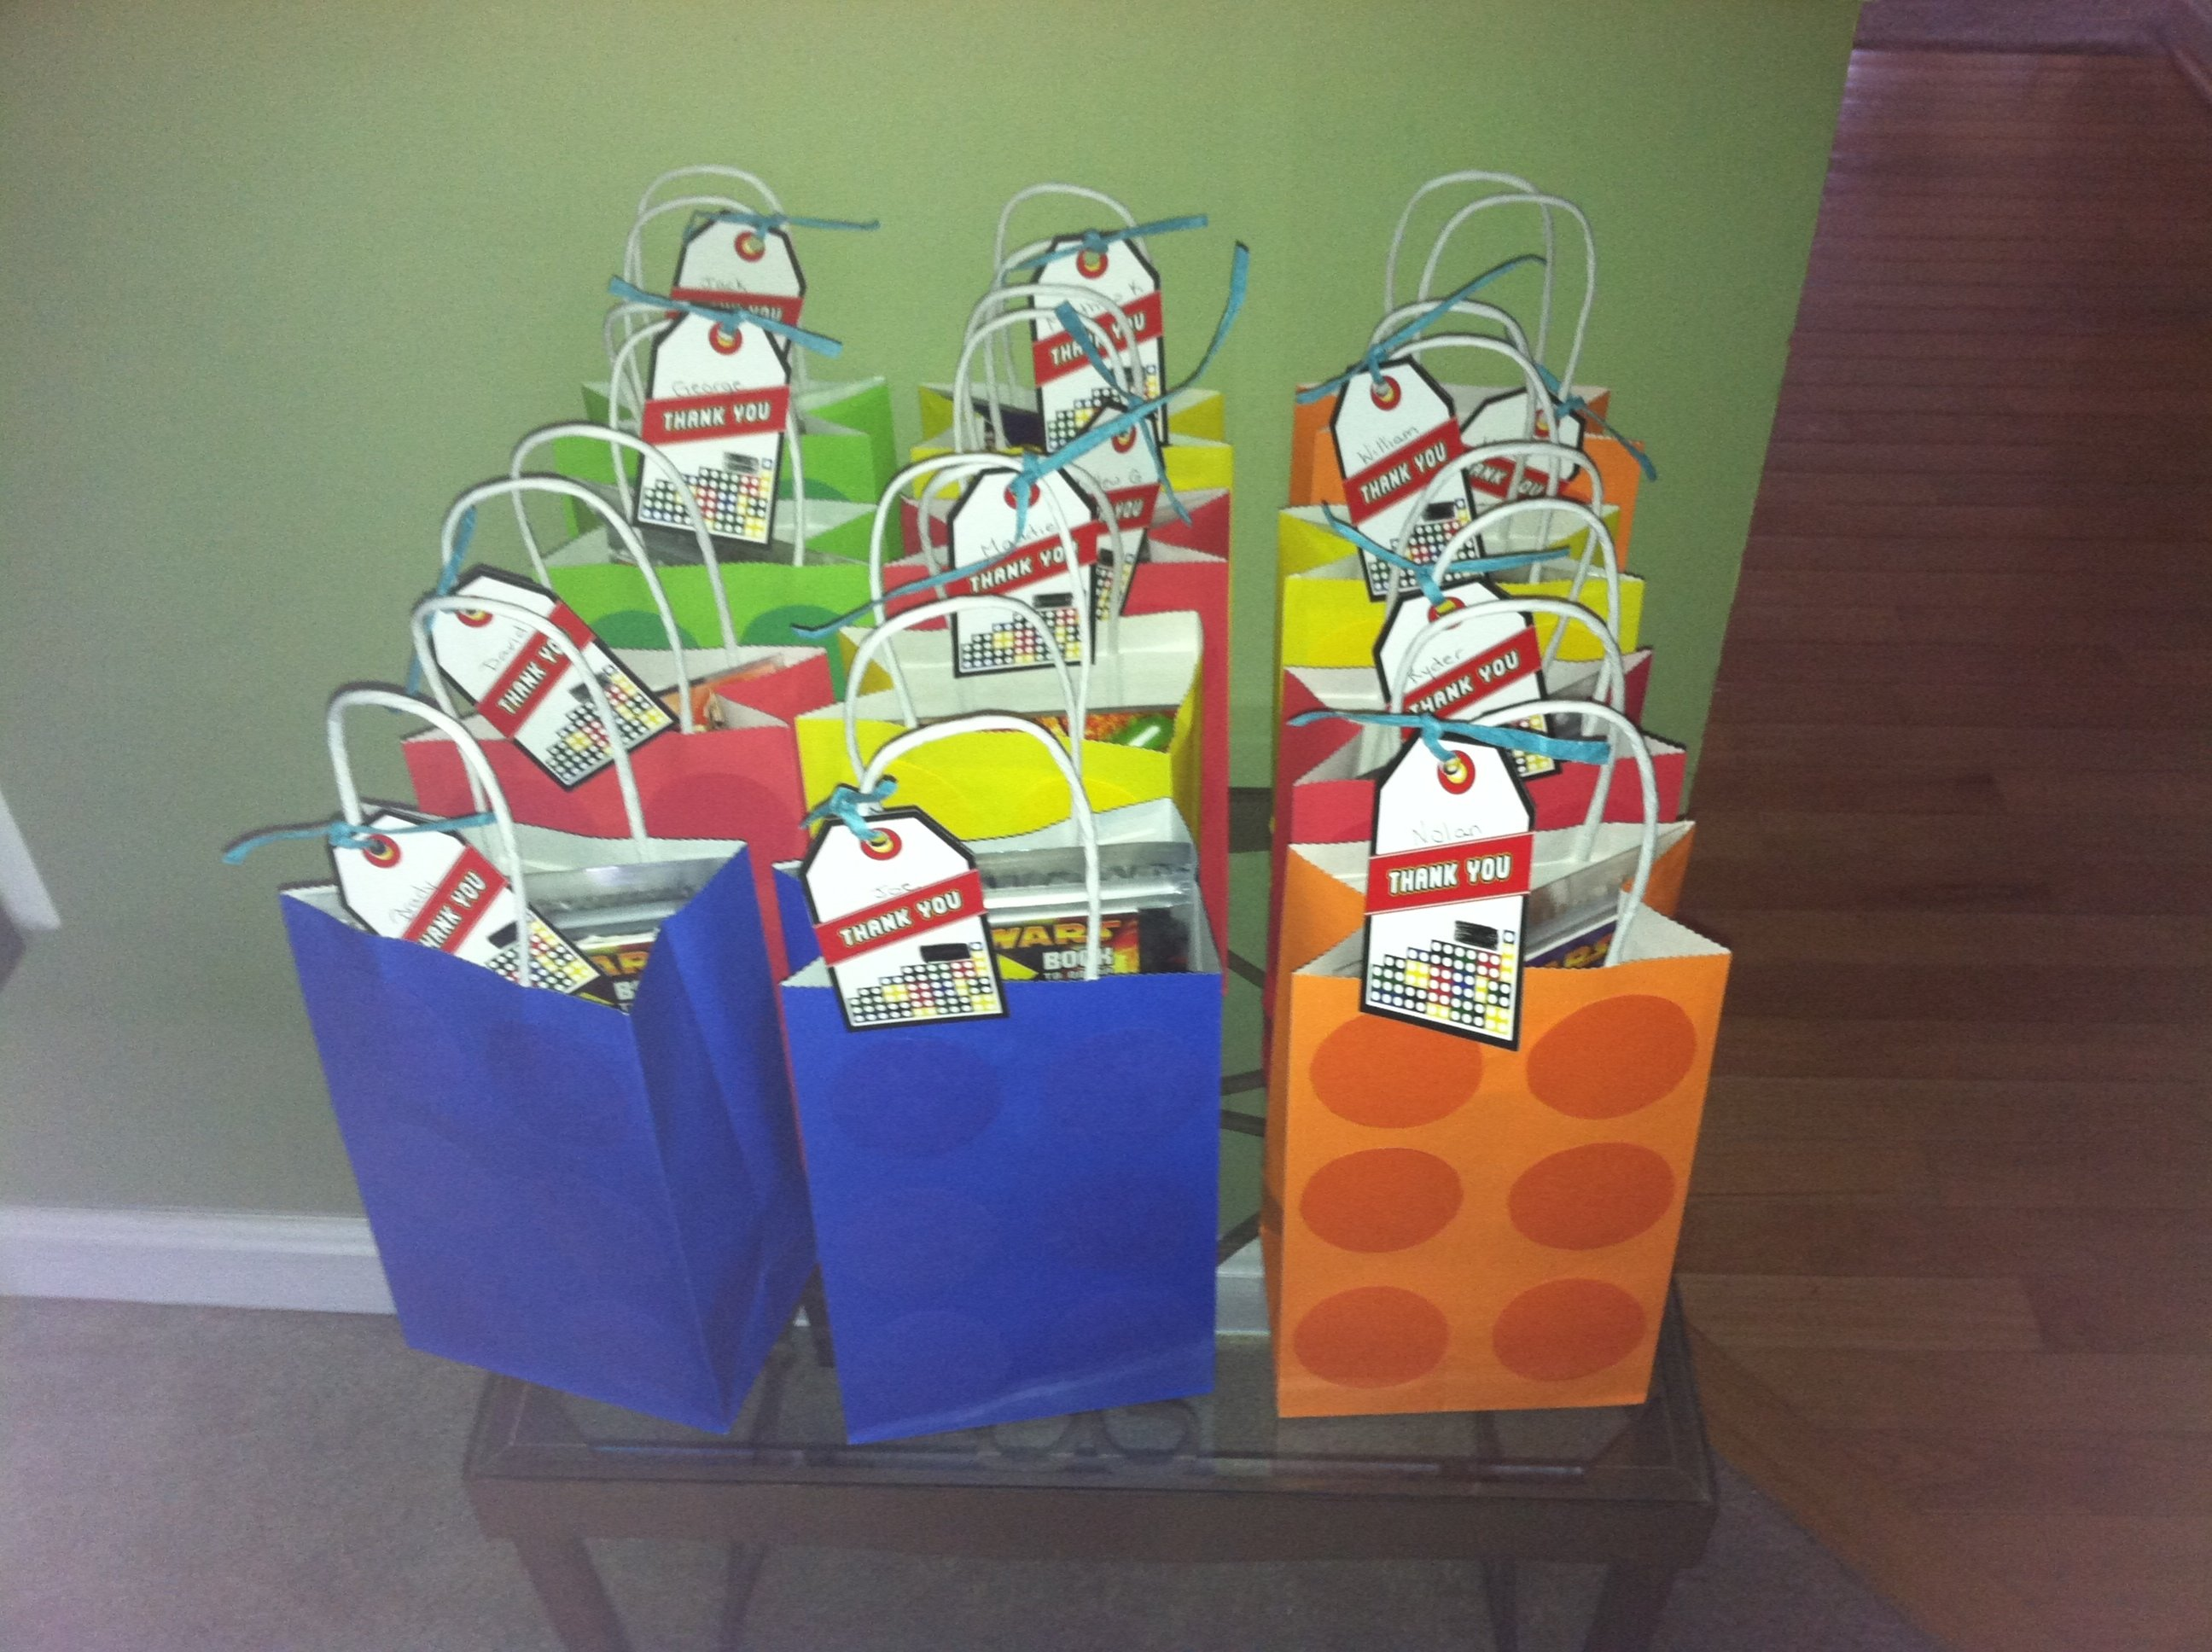 10 Awesome Goodie Bag Ideas For Adults 59 goodie bag gift ideas creative guest goodie bag ideas for your 2021